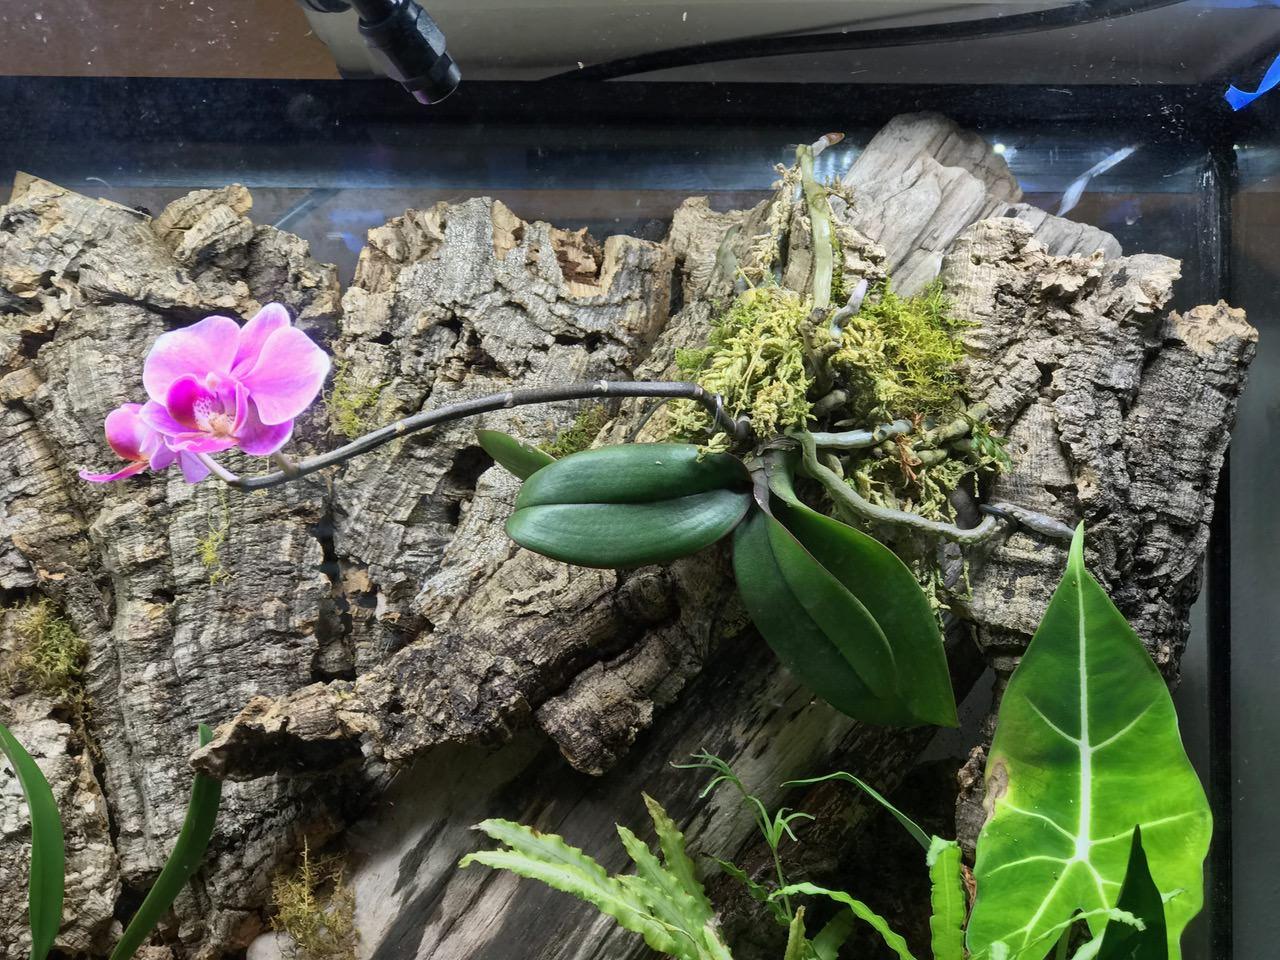 Love seeing natural Phalaenopsis growth - leaves fanning outward and downward while the roots anchor the plant.